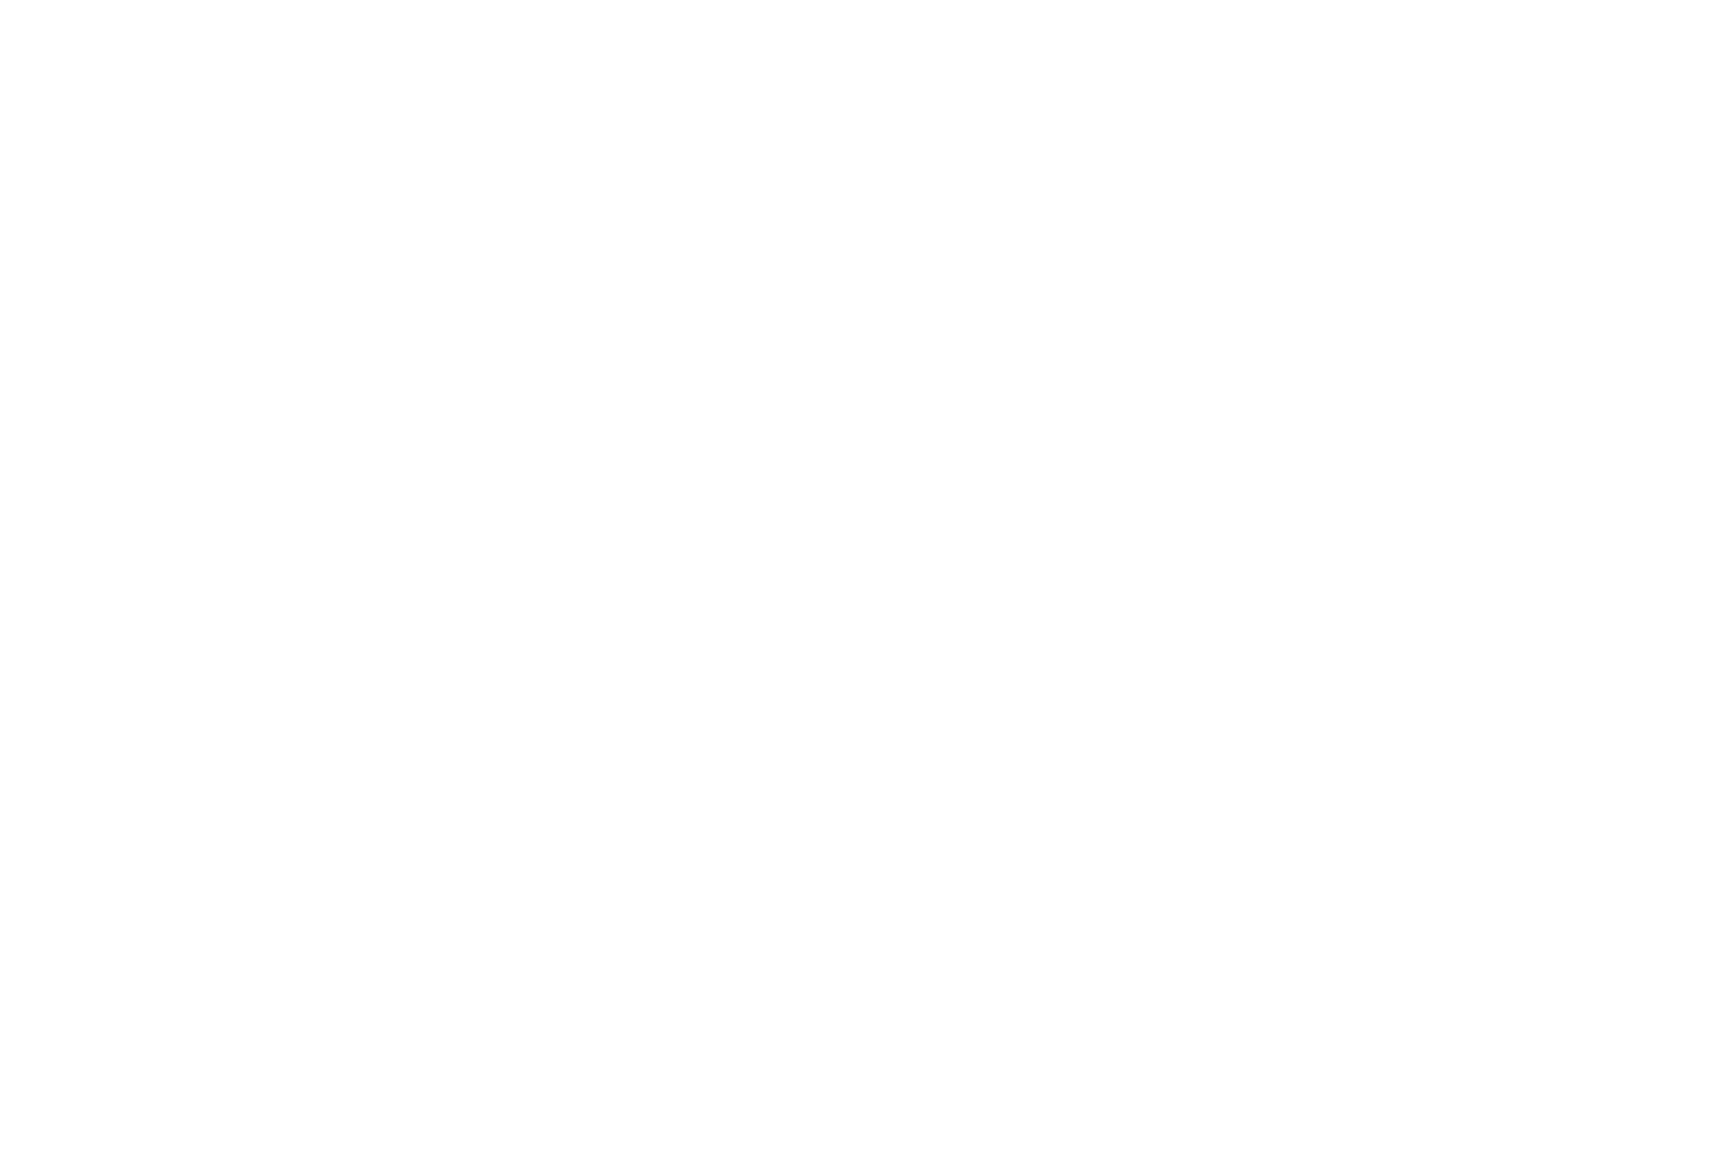 OFFICIAL SELECTION - Indie Gathering International Film Festival - 2019 2.png